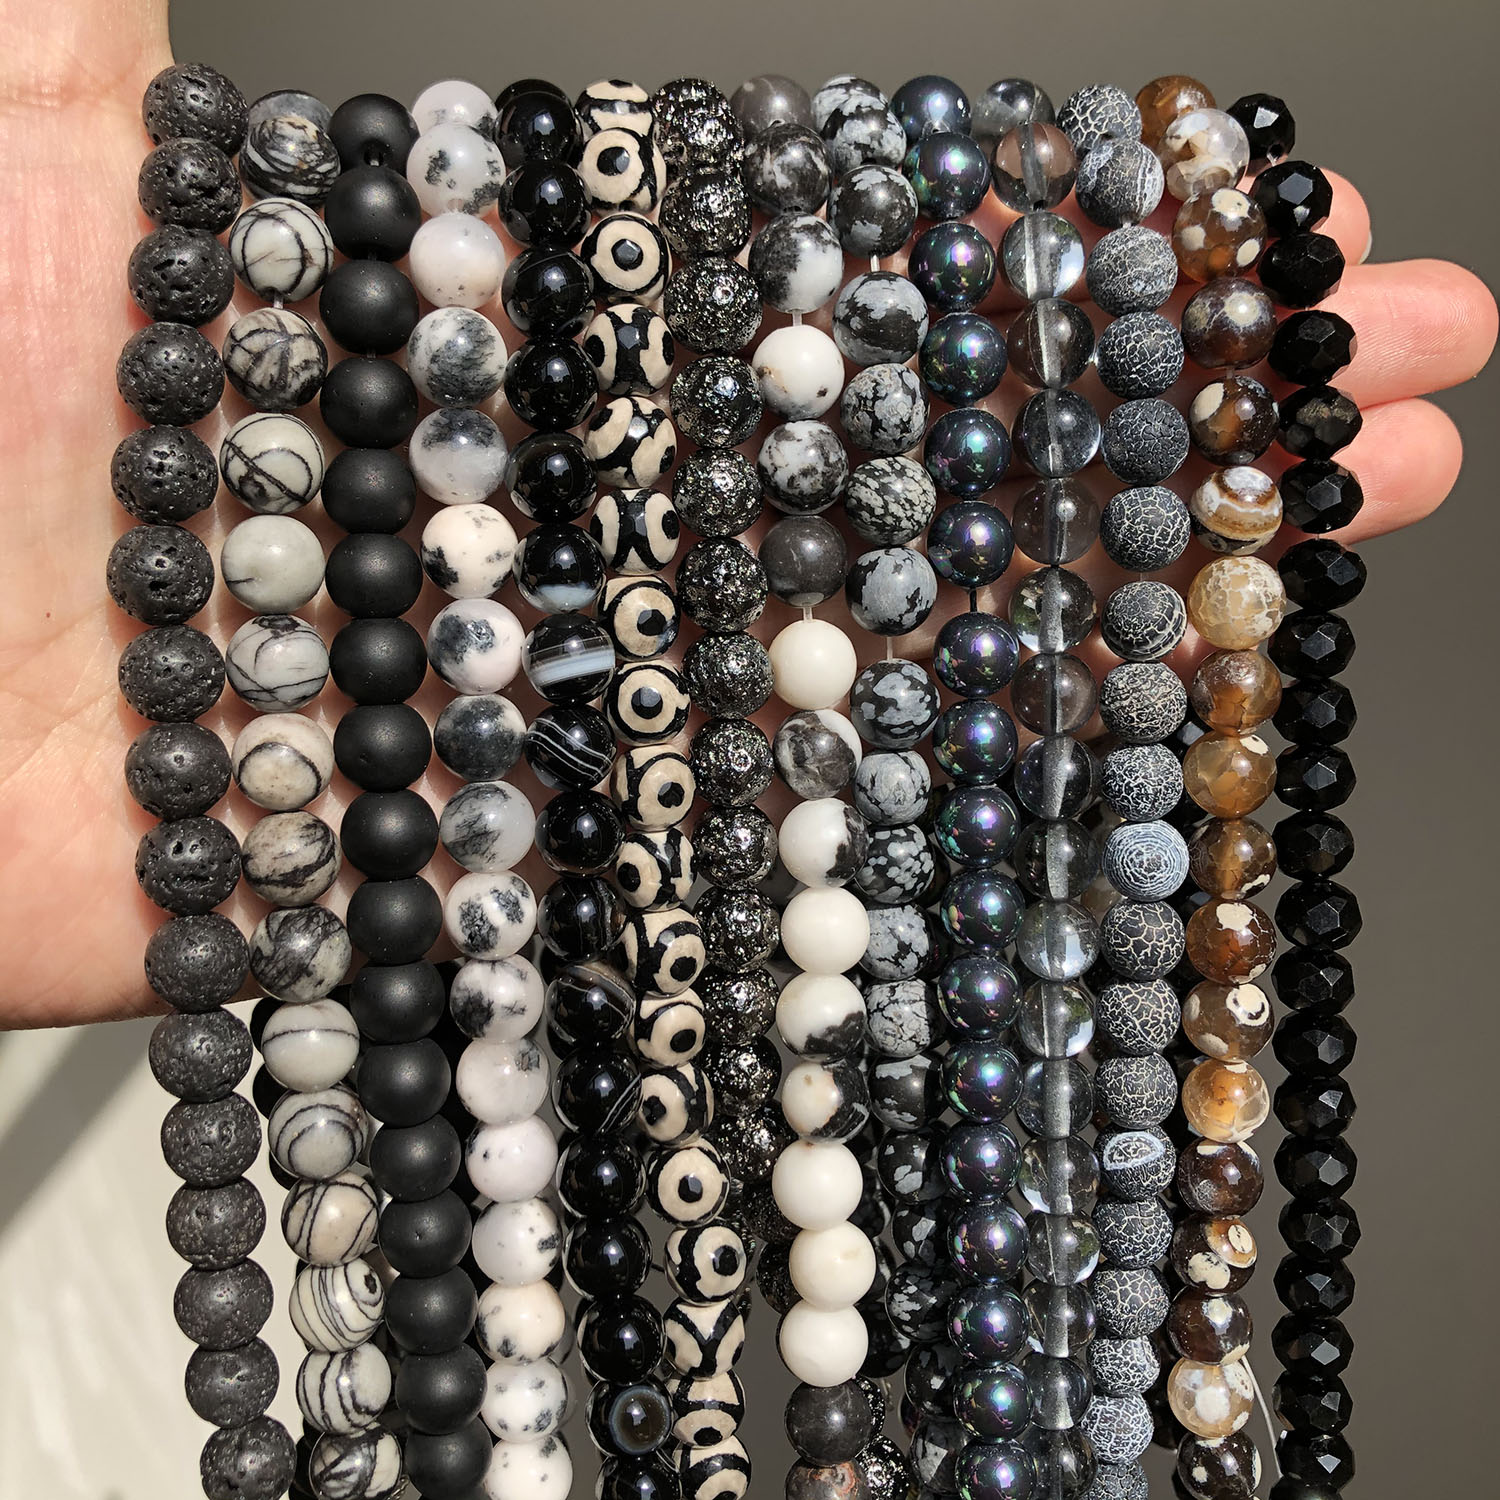 Natural Stone Black Series Gems Beads Obsidian Volcanic Lava Stone Agates Round Loose Beads For Jewelry Making Findings 4-12mm